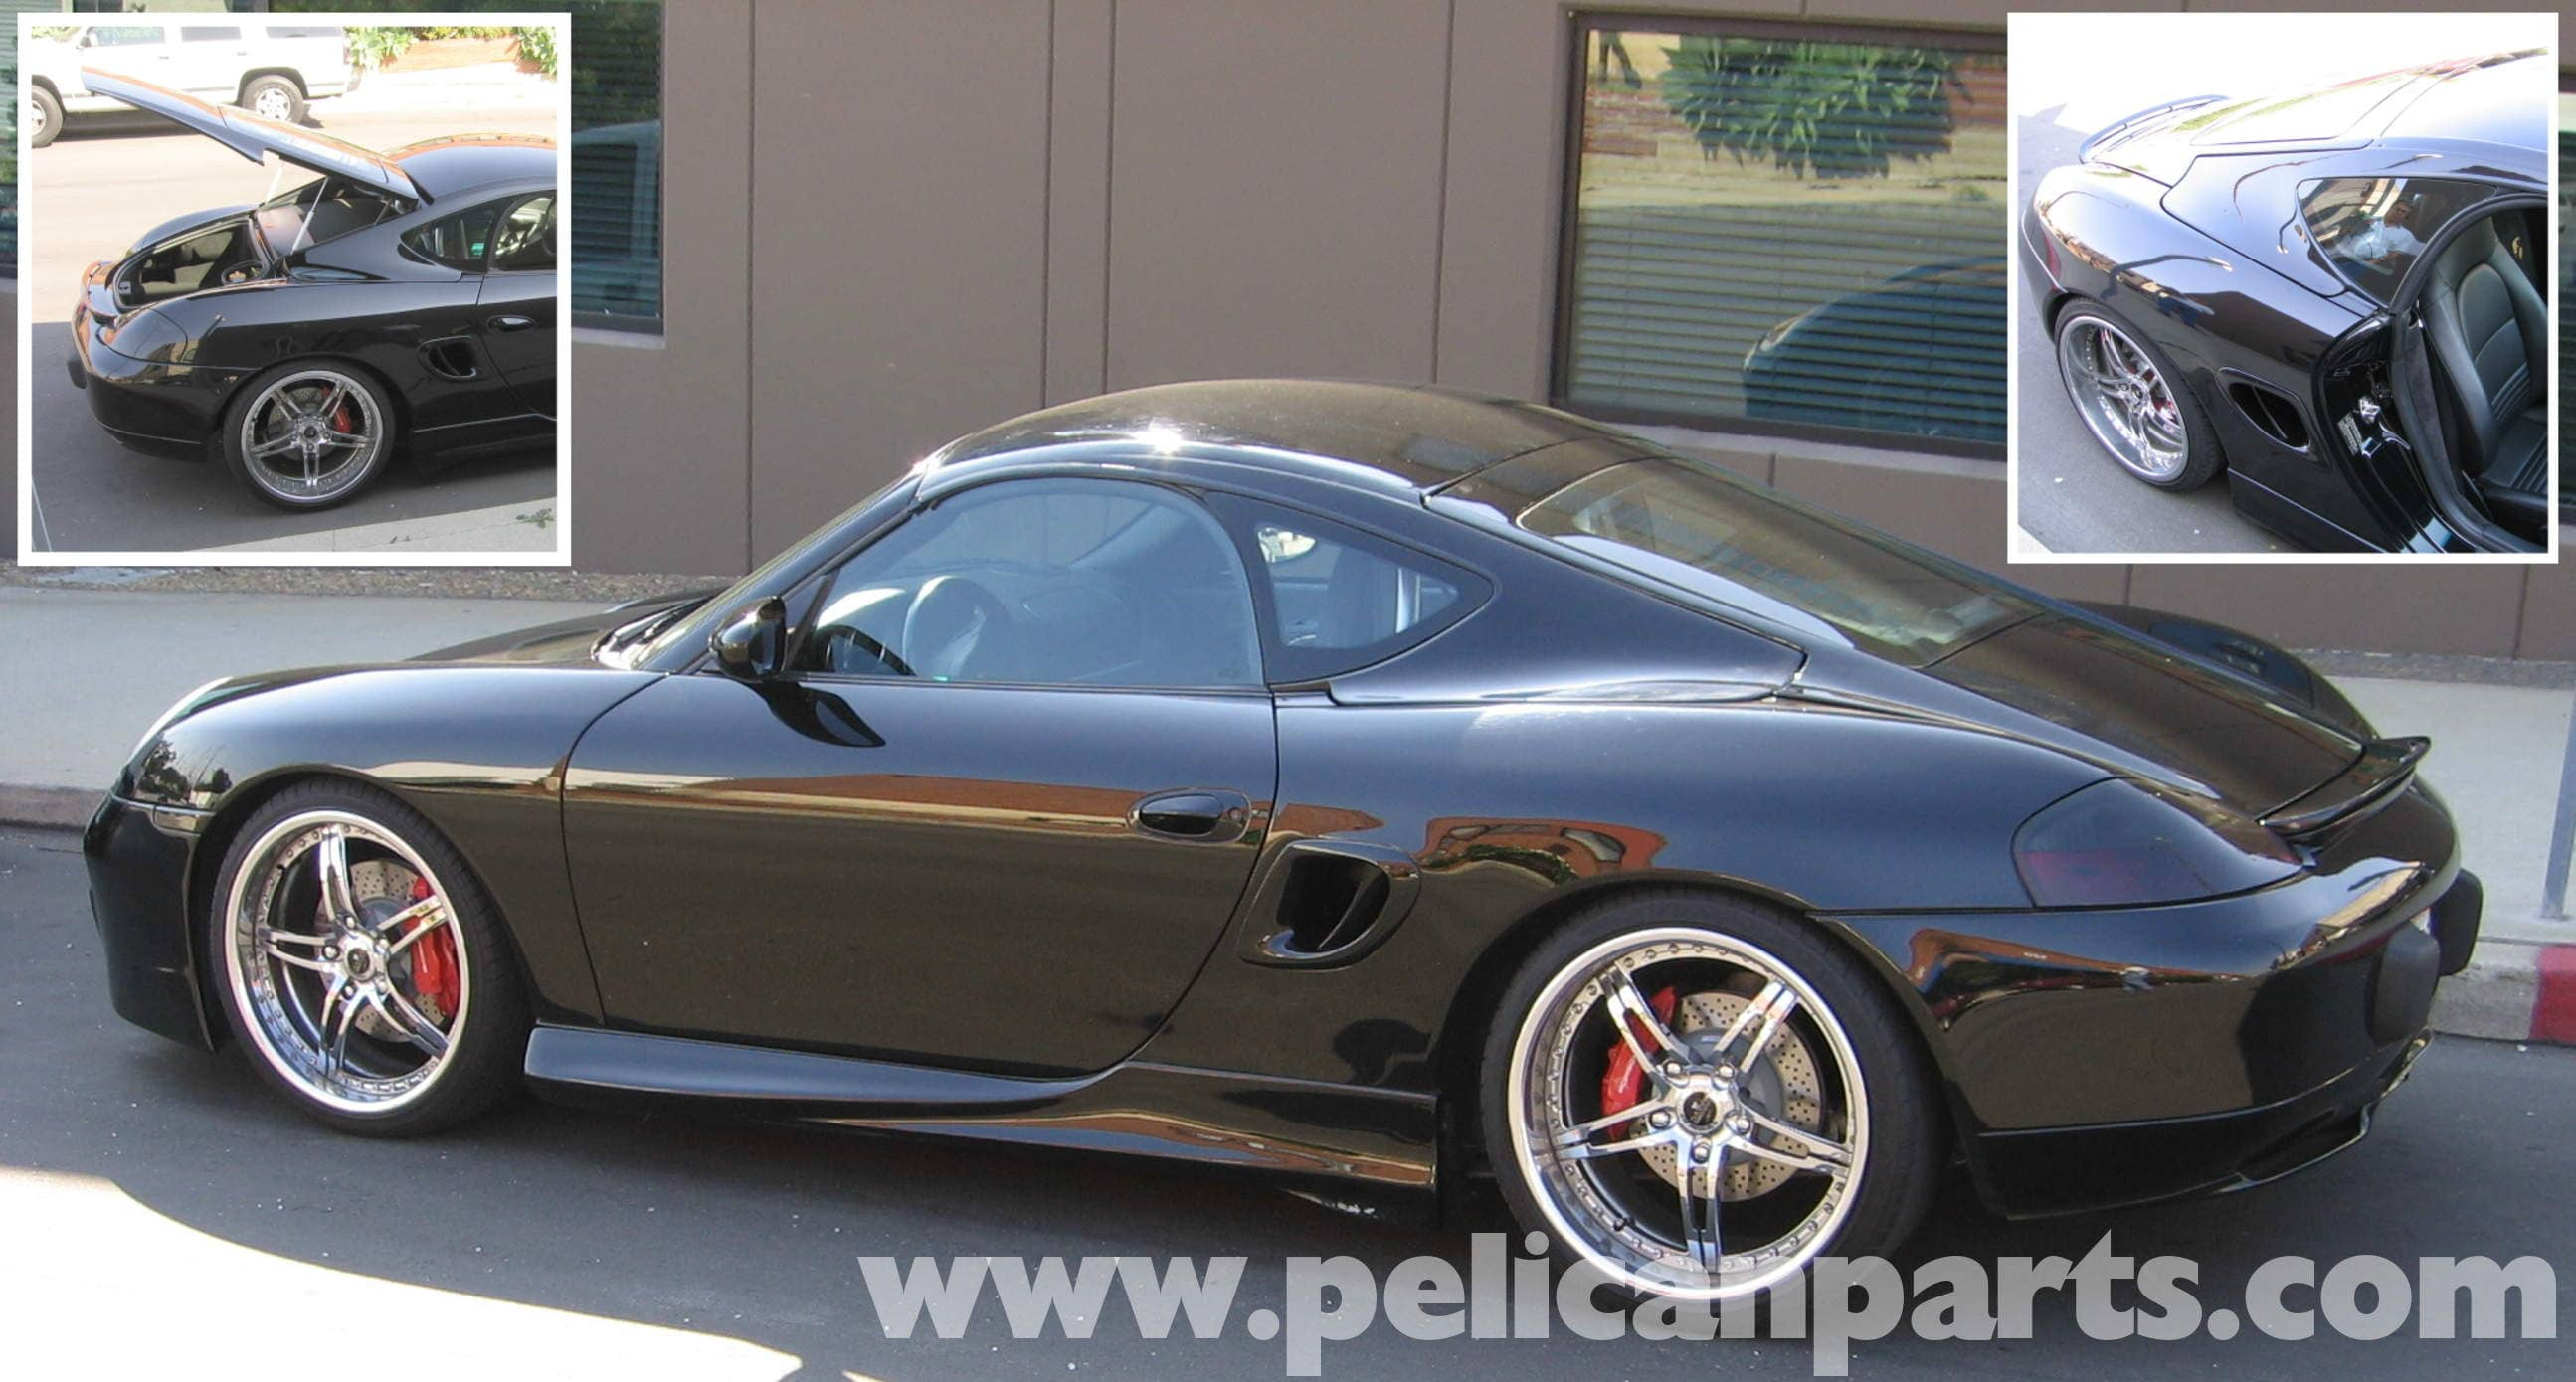 Porsche Boxster Hardtop Installation Kit 986 987 1997 08 Pelican Parts Technical Article